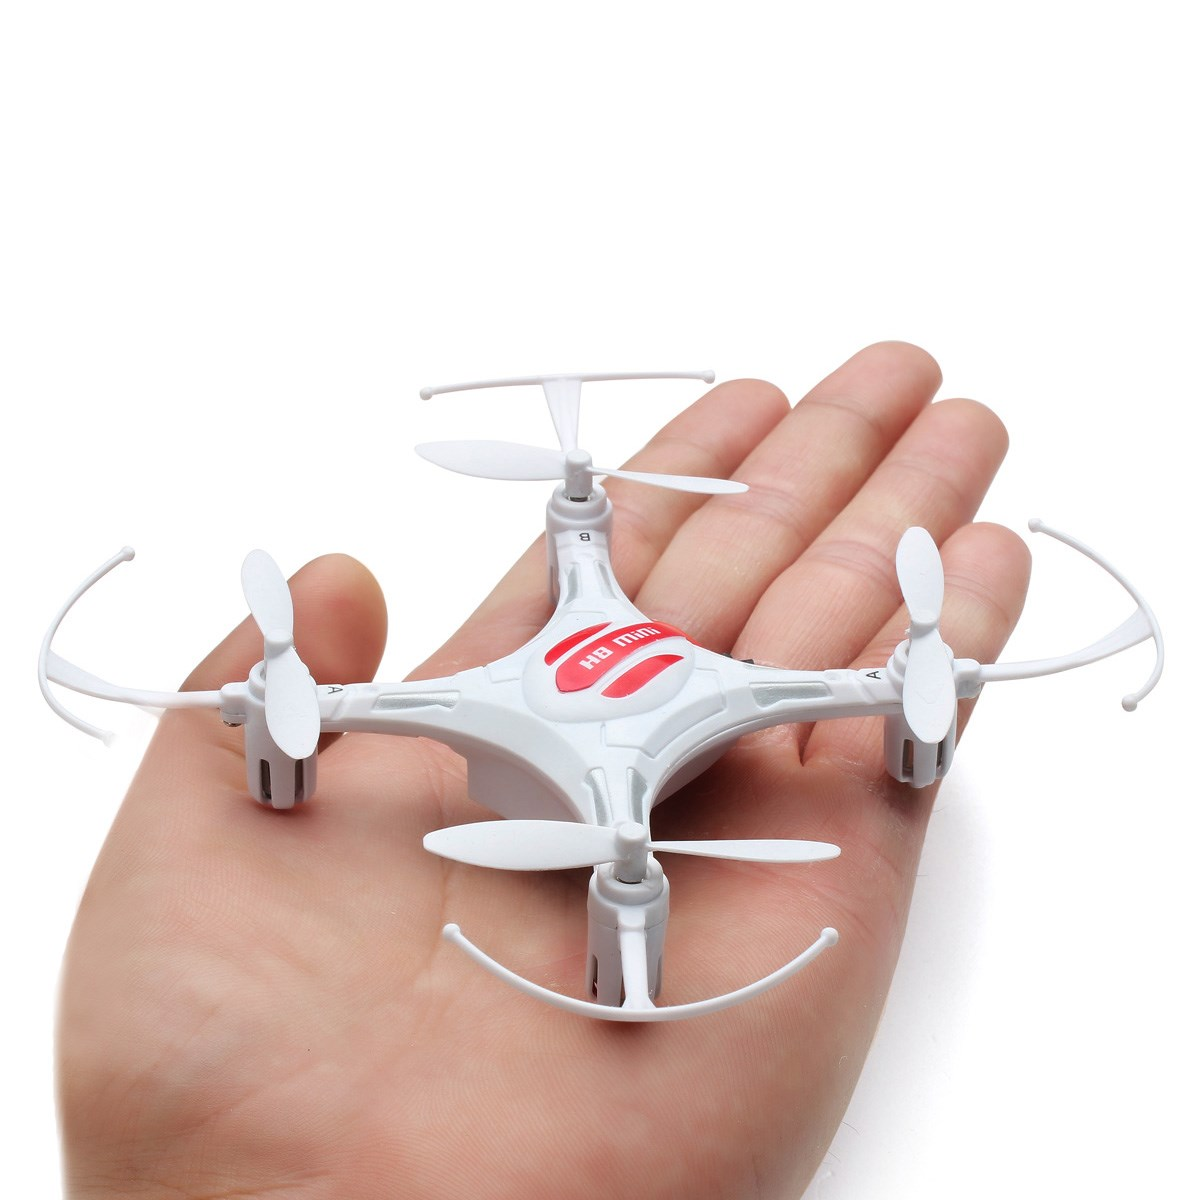 Eachine H8 Mini Headless RC Helicopter Mode 2.4G 4CH 6 Axle Quadcopter RTF Remote Control Toy Mode2(China (Mainland))